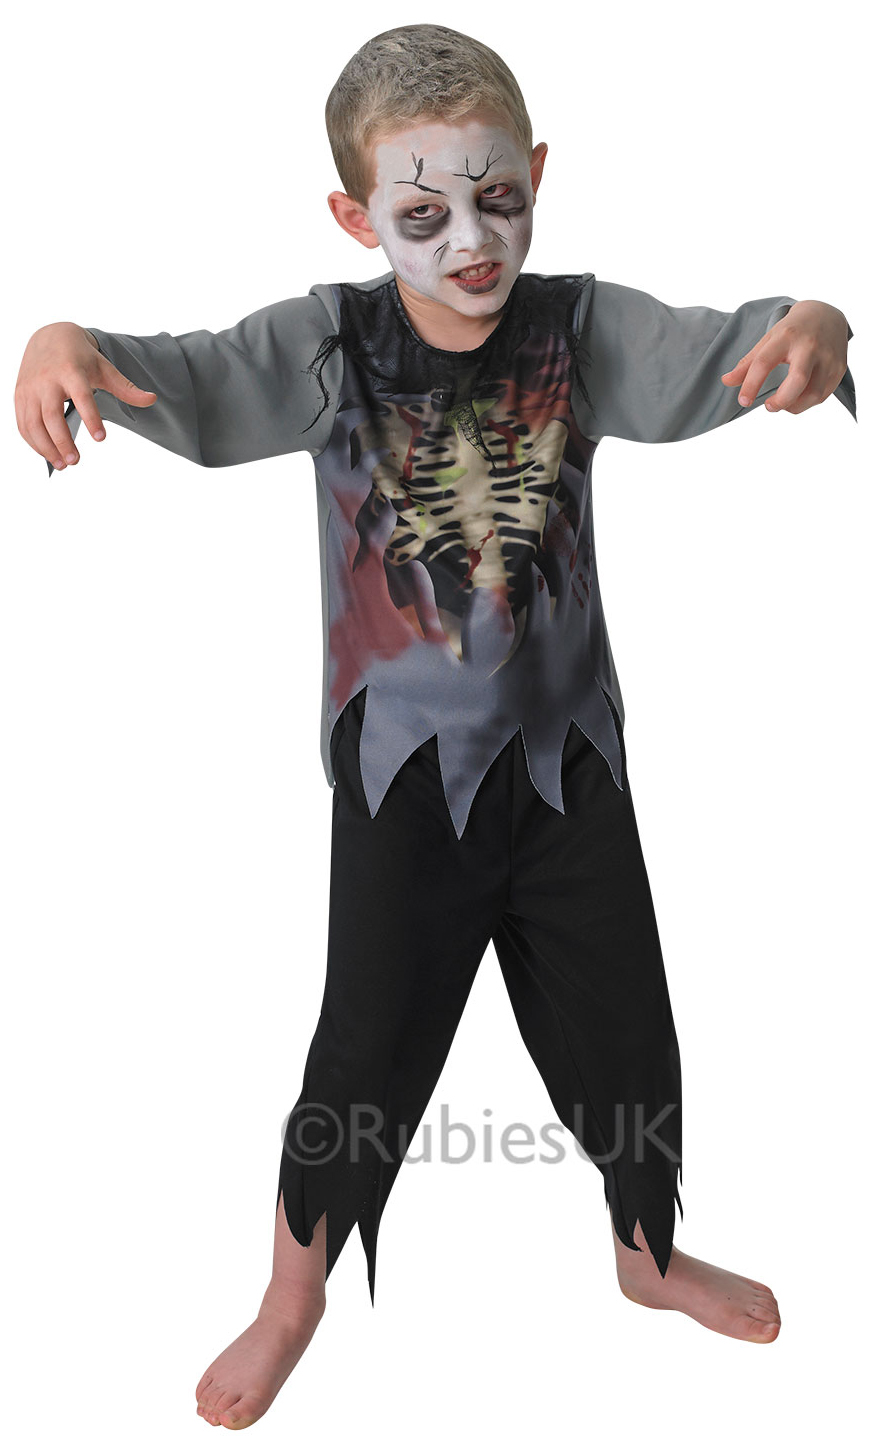 childs zombie boy costume | kids halloween costumes | mega fancy dress